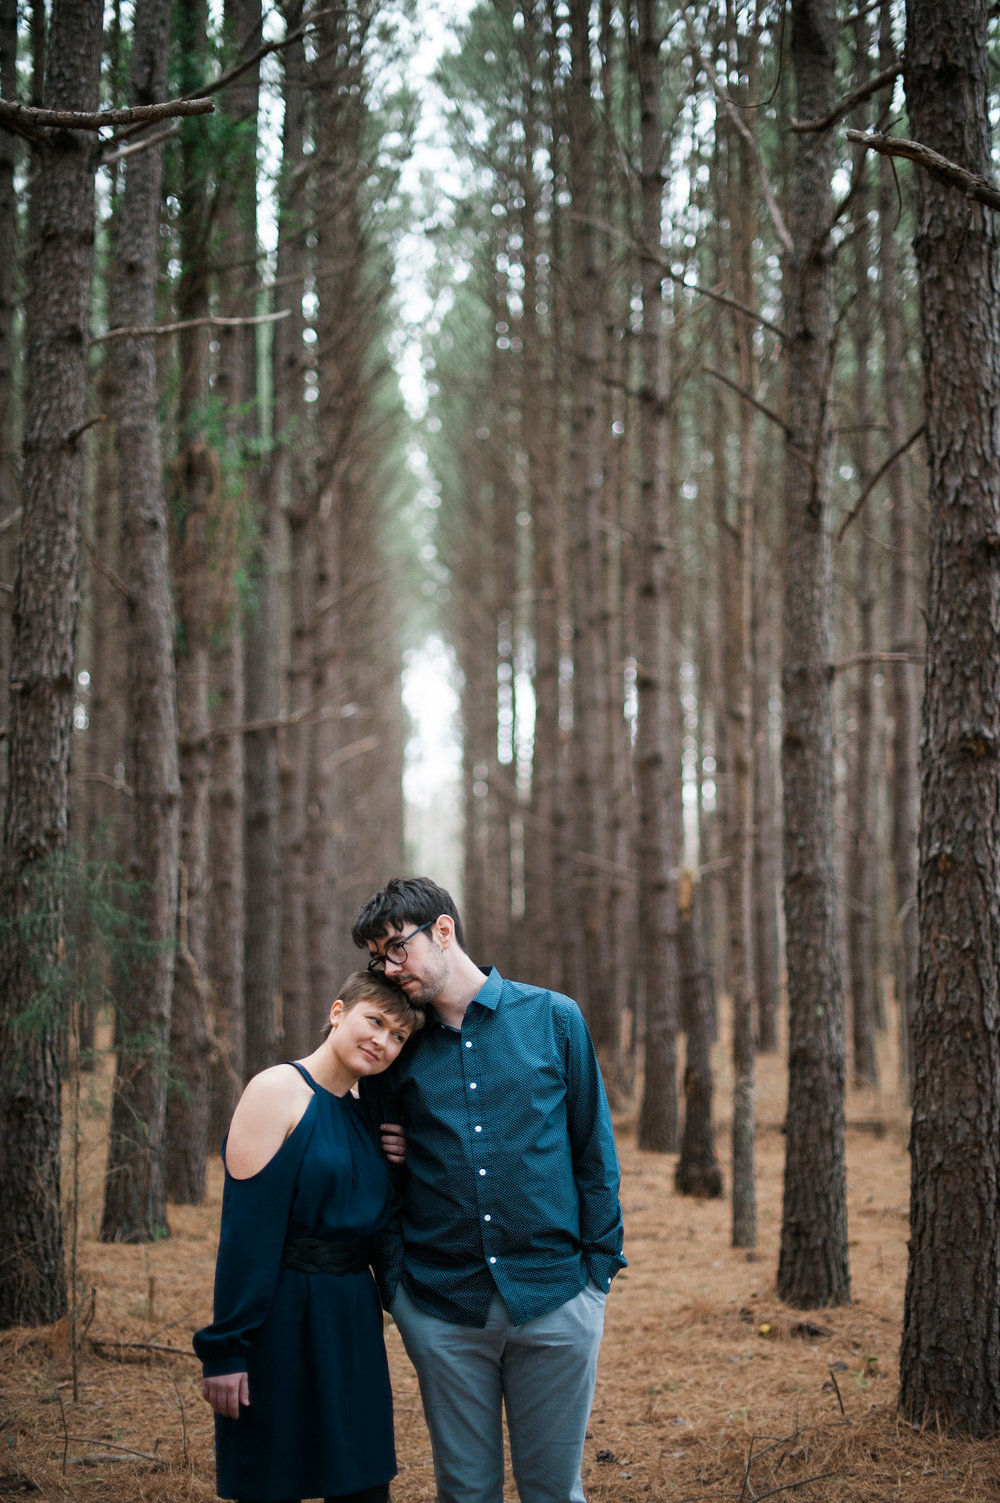 kate-andrew-engagement-039-X4.jpg